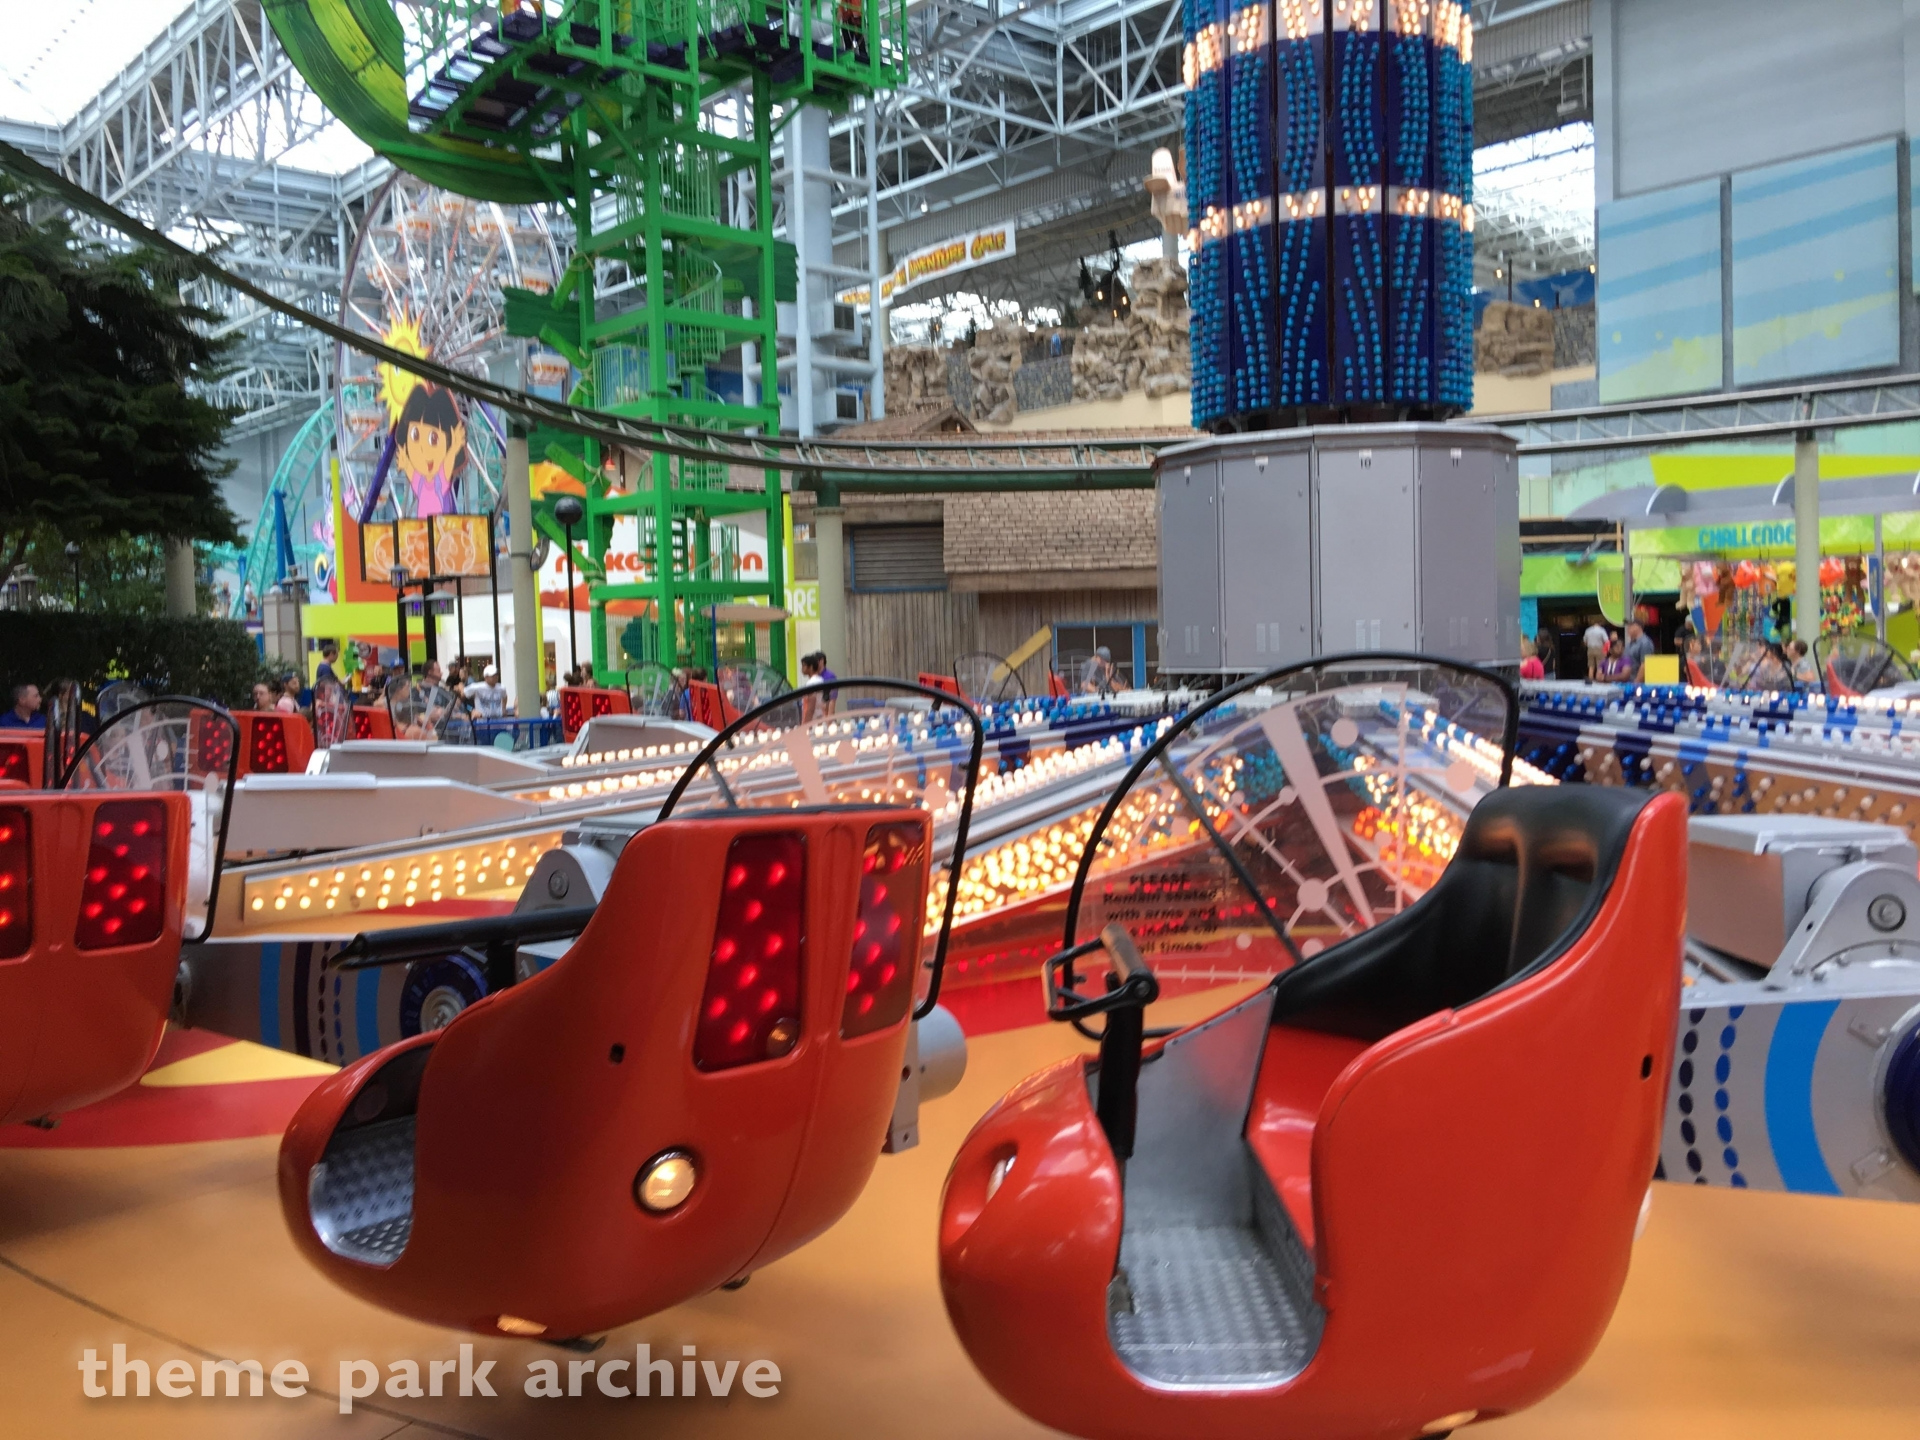 Jimmy Neutron's Atomic Collider at Nickelodeon Universe at Mall of America